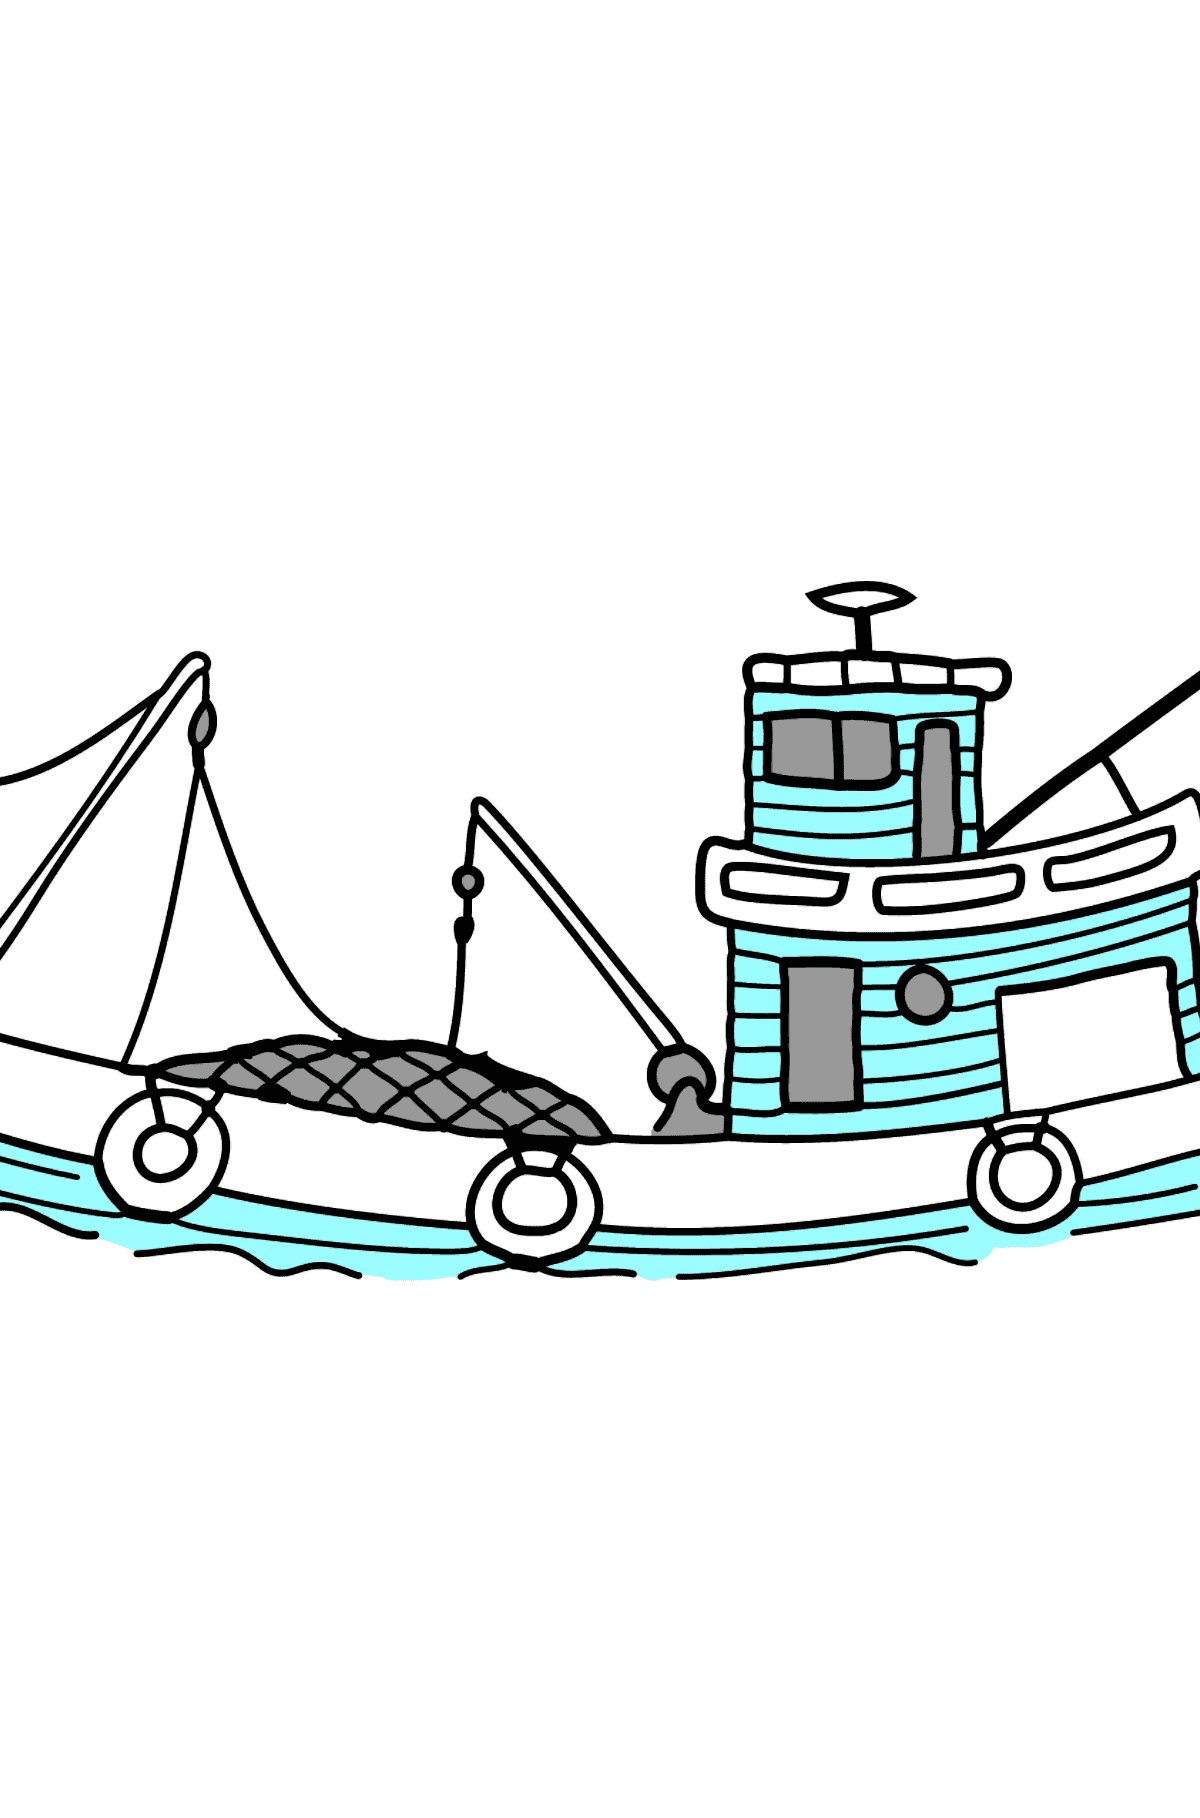 Coloring Page - A Fishing Boat - Coloring Pages for Kids